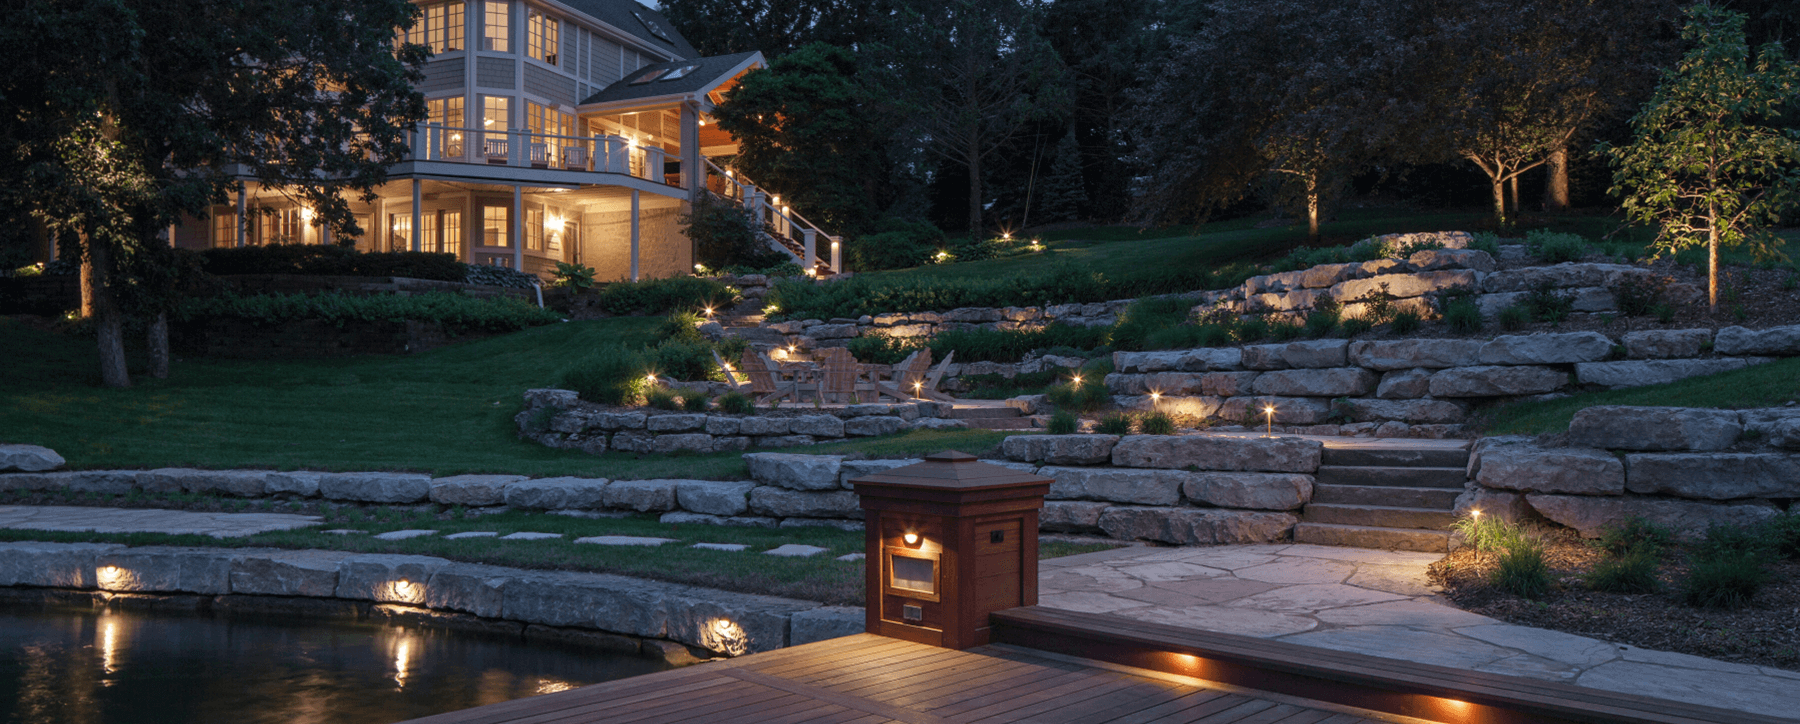 Lake-Home-Lighting-Omaha-Nebraska-McKay-Landscape-Lighting-webslider